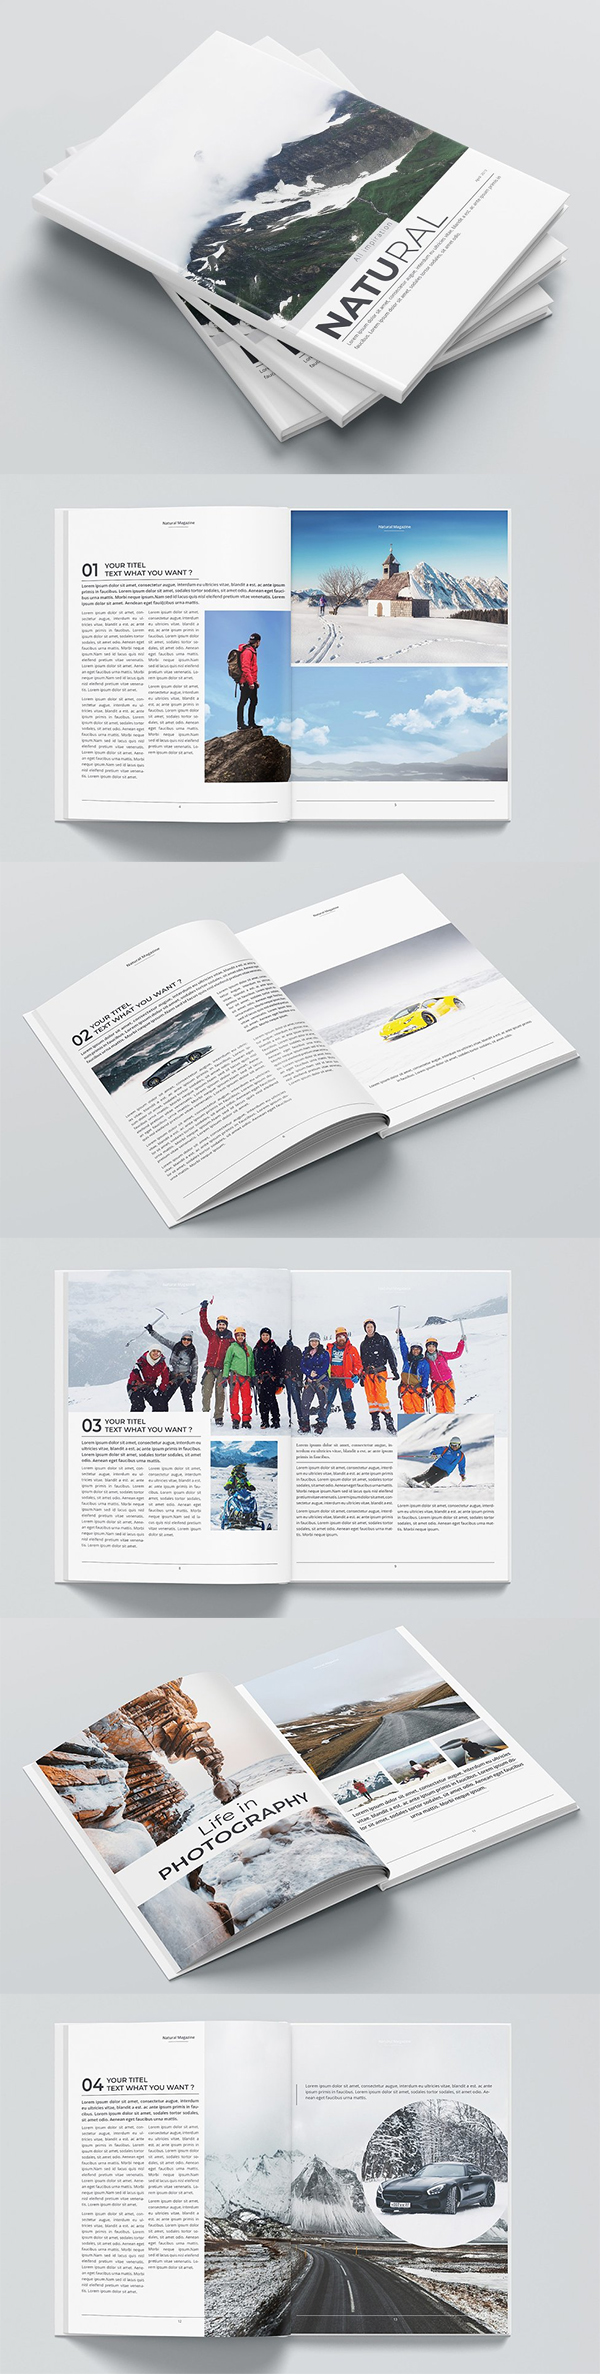 The Magazine Brochure Design